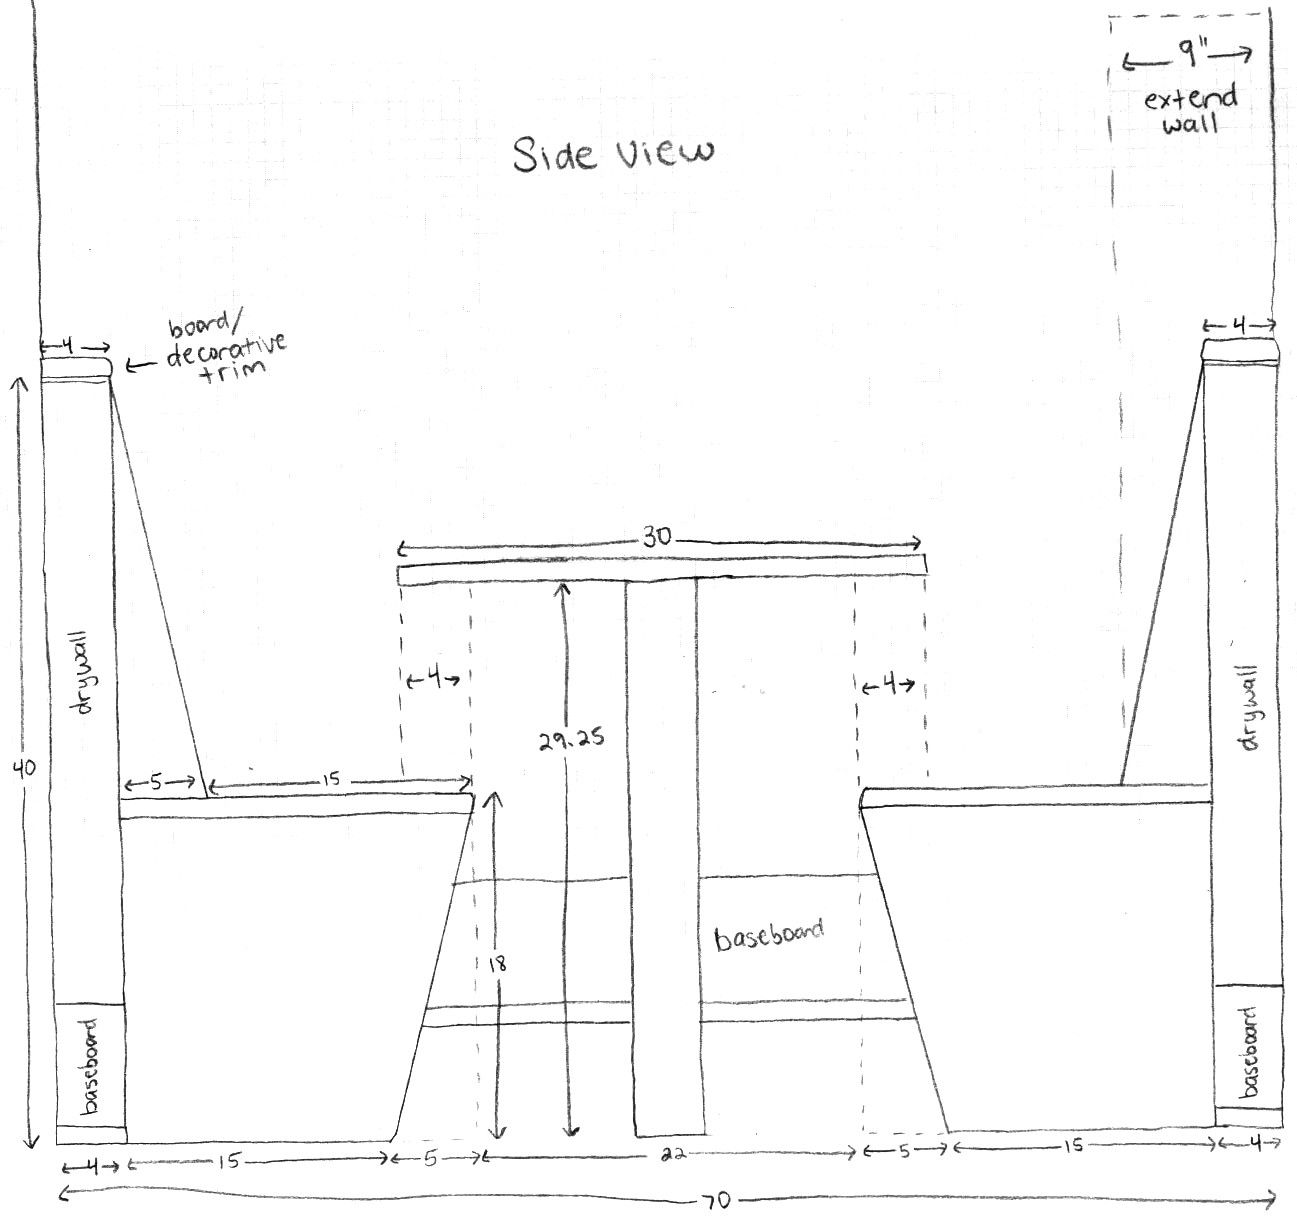 Attrayant Much Space Between Seat And Table.This Could Be Helpful In Planning. Need  To Know Howkitchen Booth Dimensions